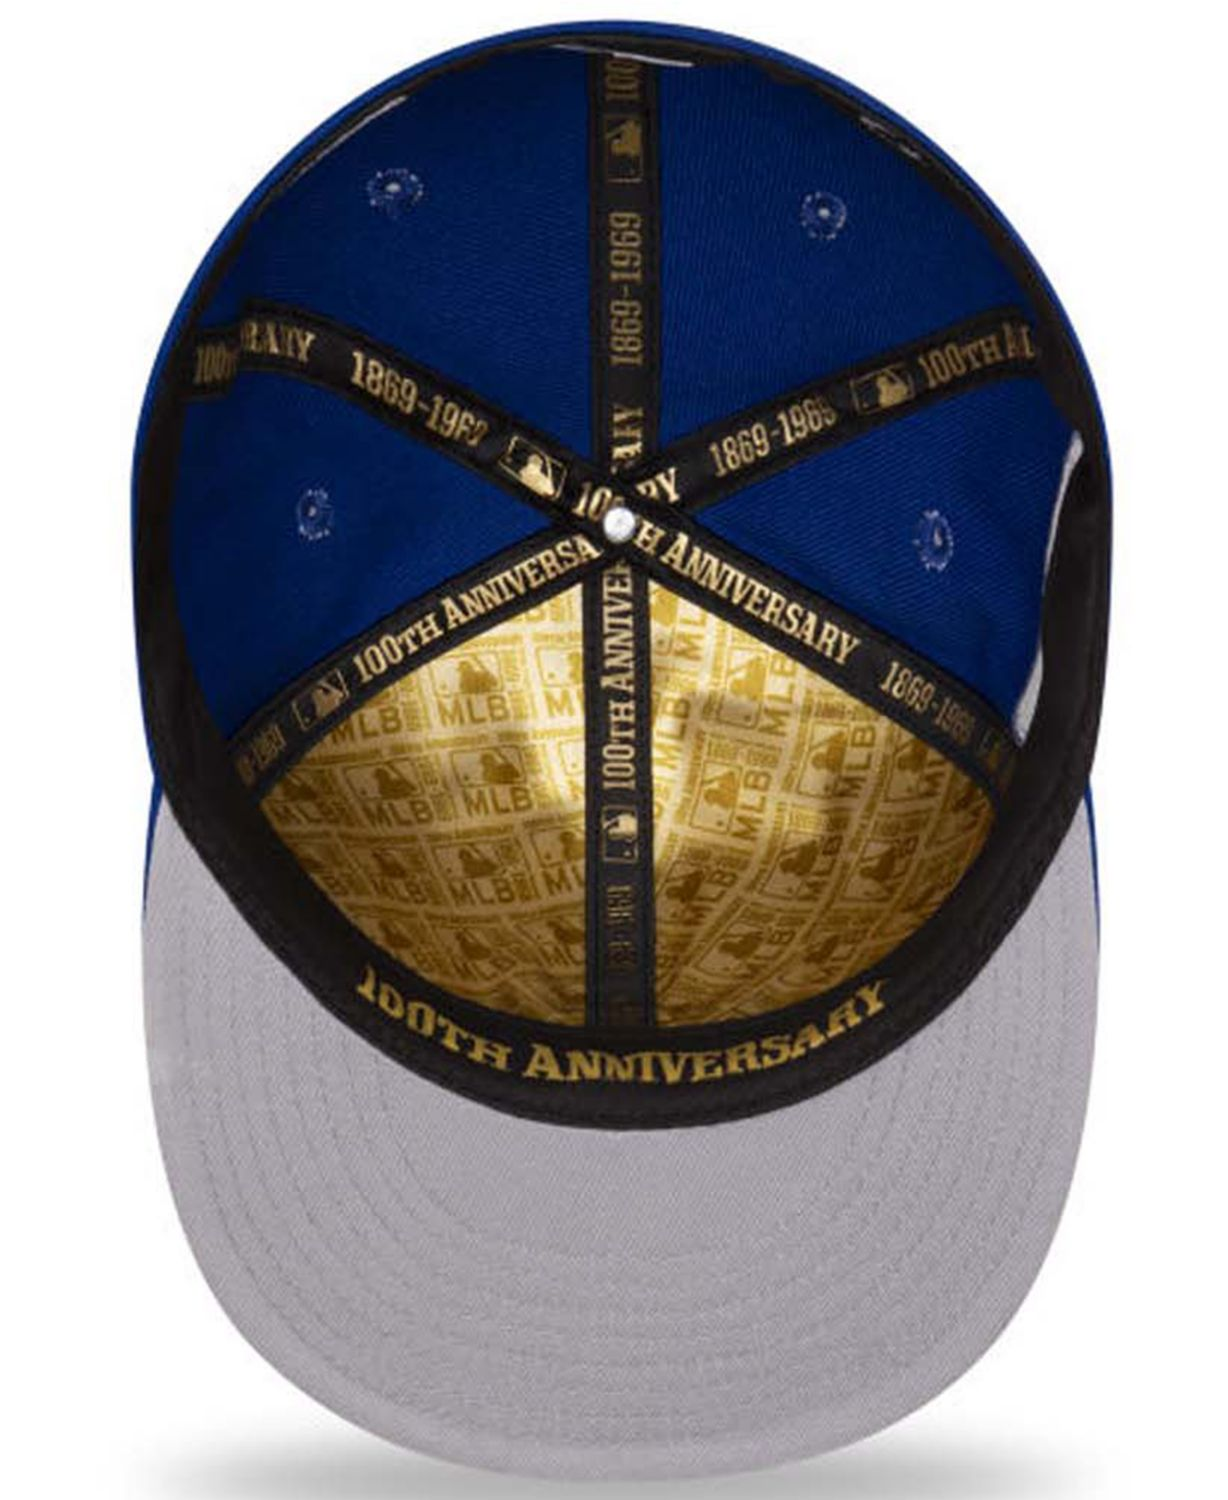 New Era Los Angeles Dodgers 100th Anniversary Patch 59FIFTY Cap & Reviews - MLB - Sports Fan Shop - Macy's